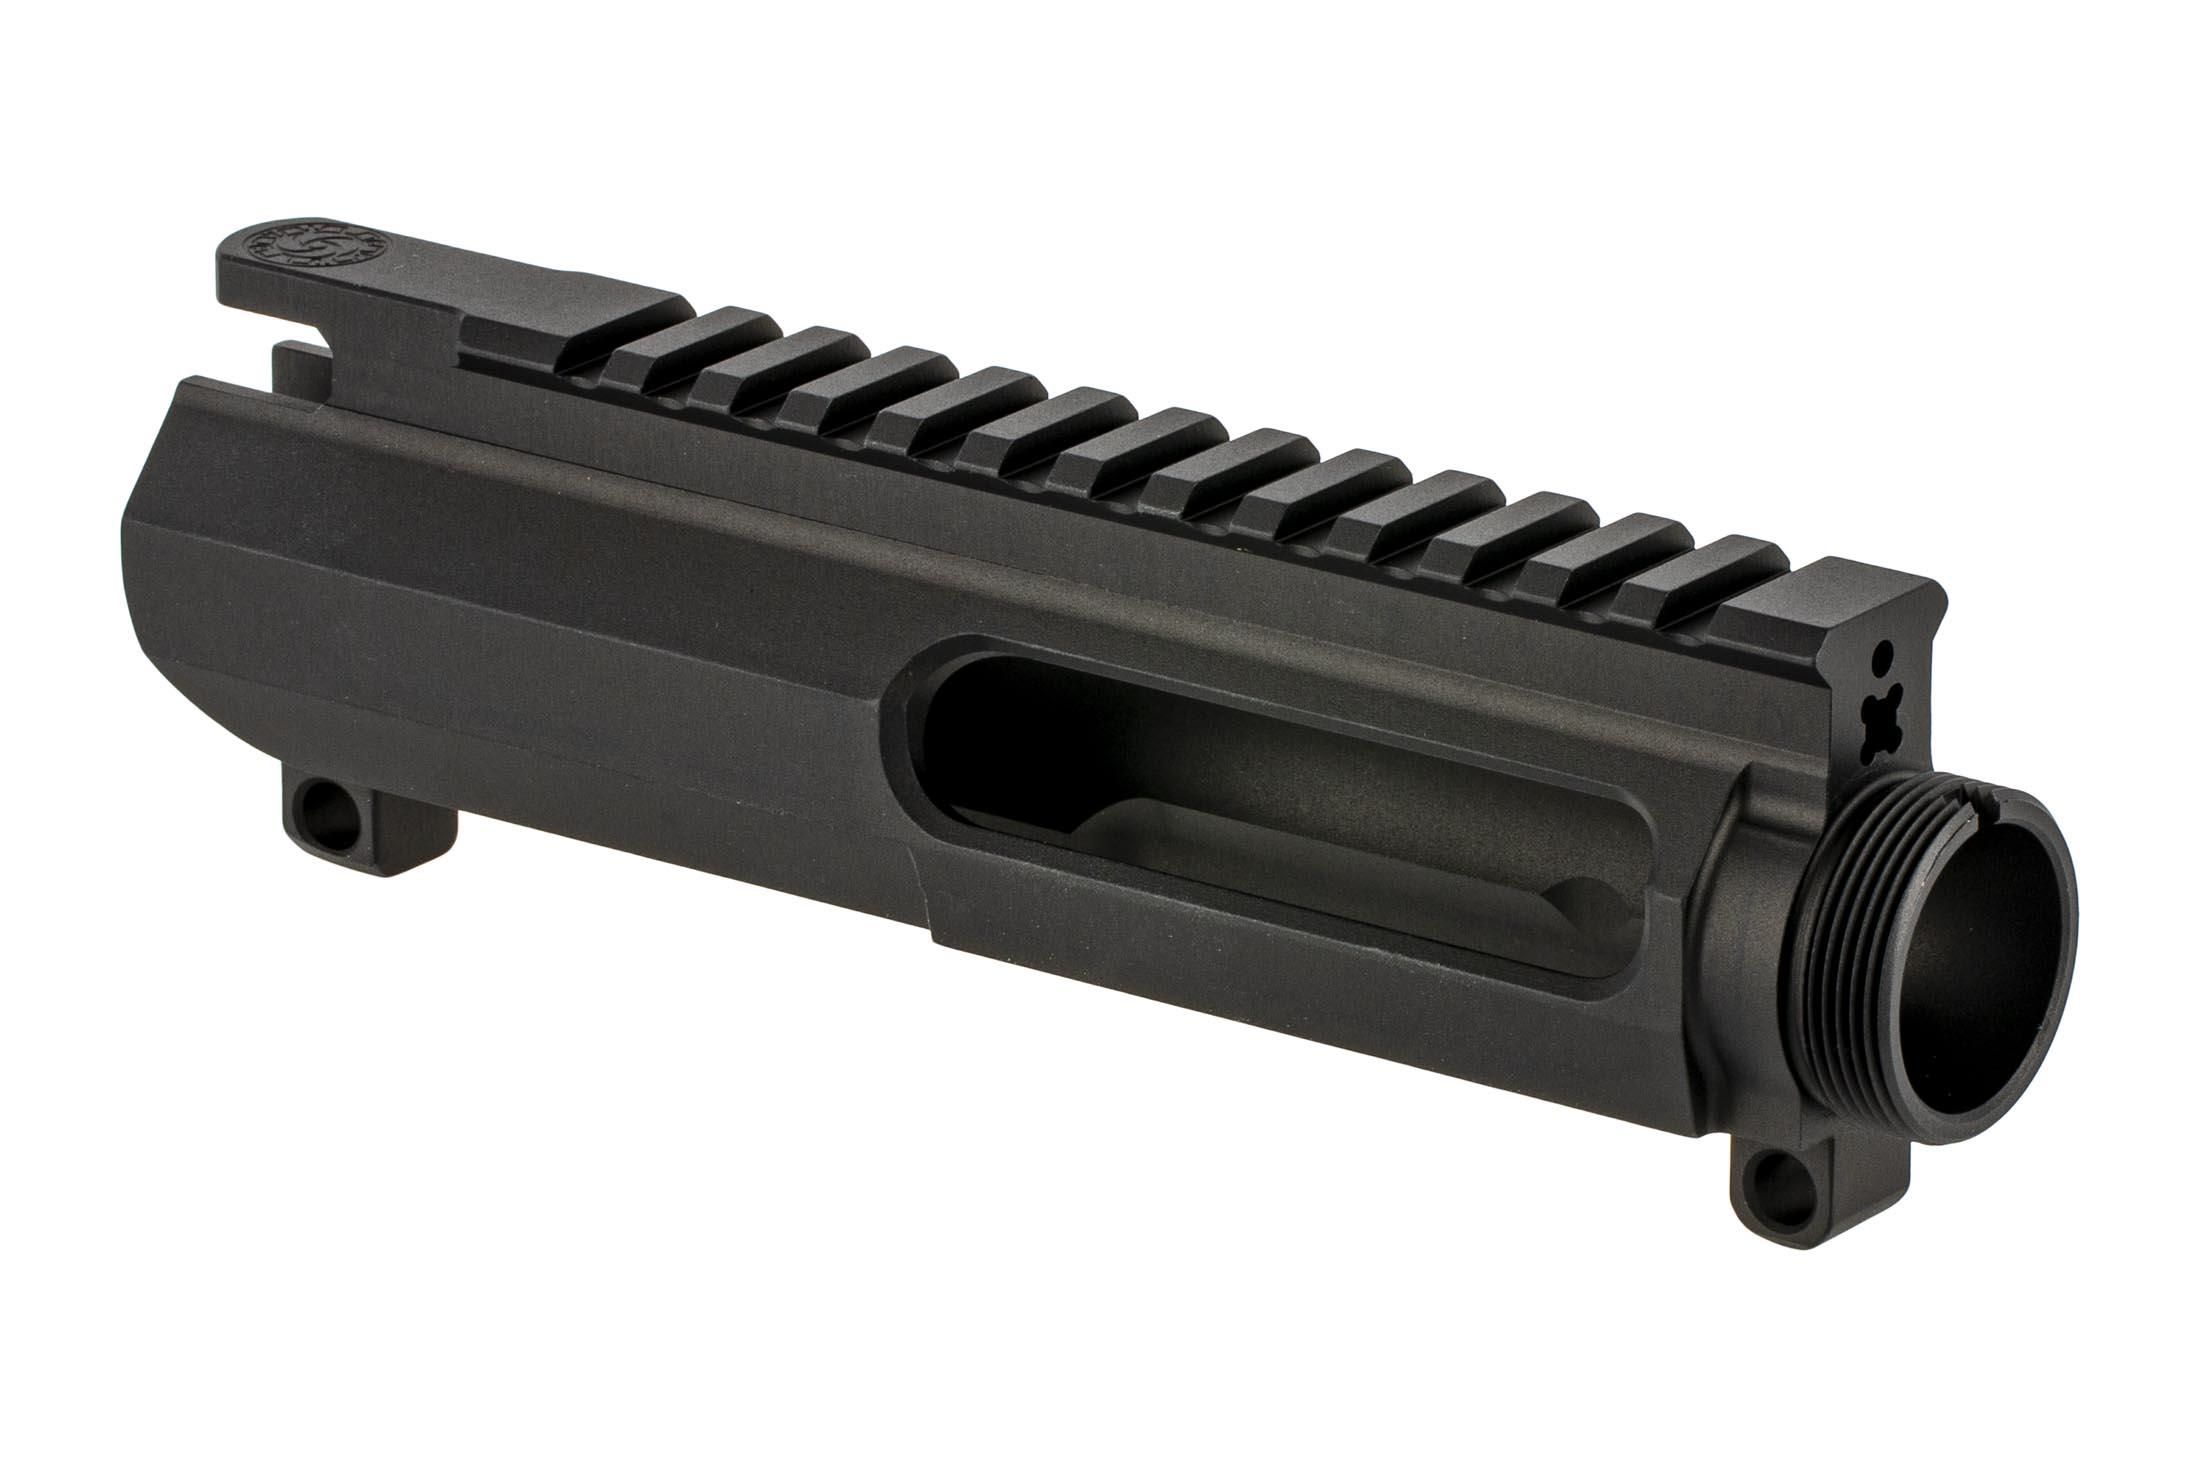 The Cross Machine Tool UPUR-3 Billet AR15 Upper Receiver is compatible with 458 SOCOM